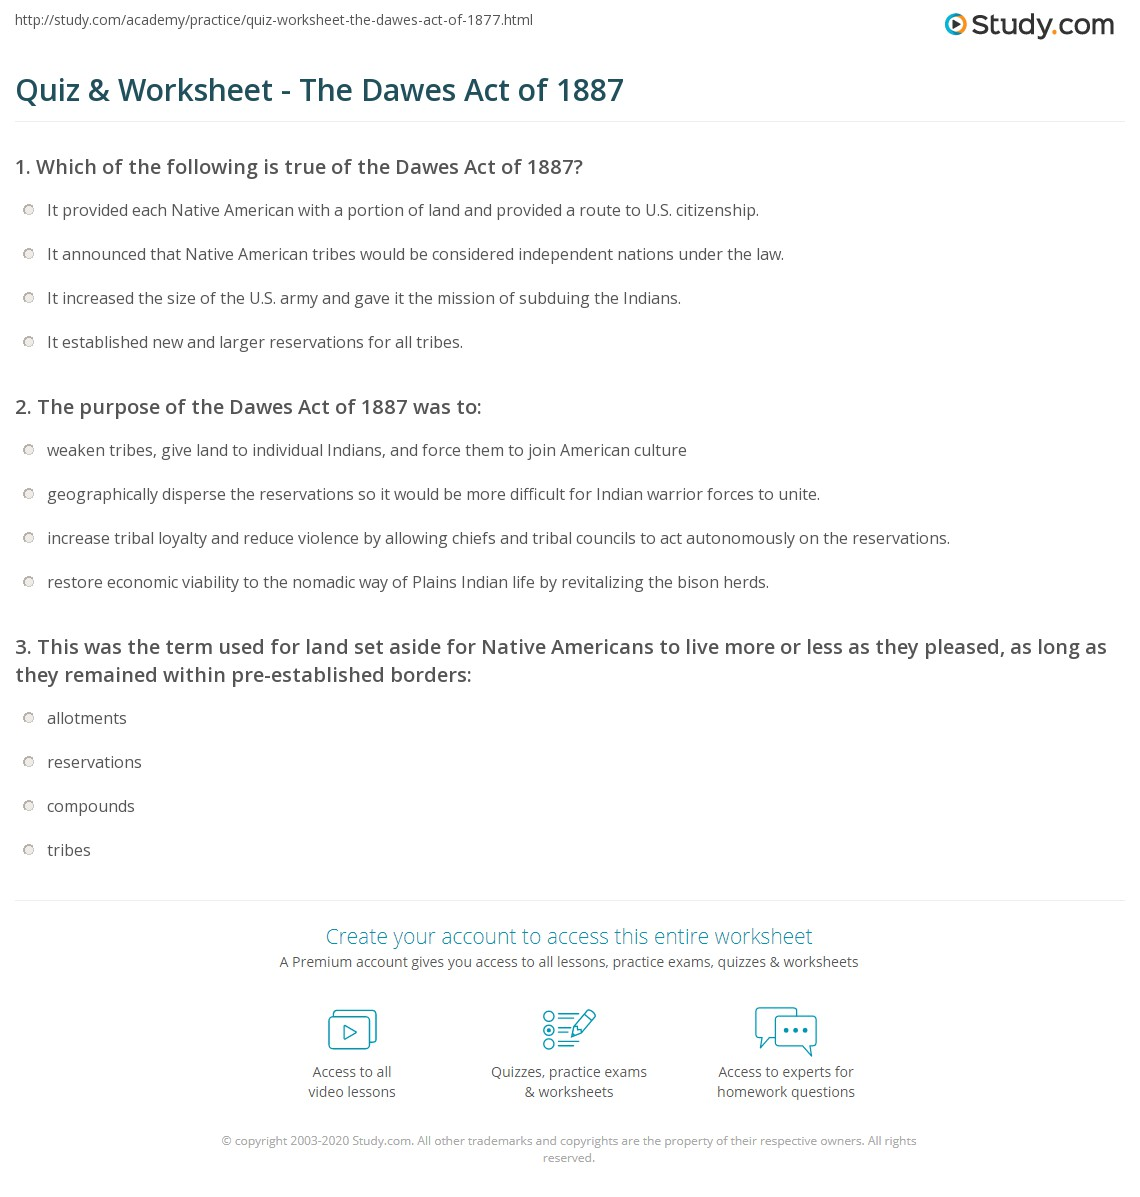 Quiz & Worksheet - The Dawes Act of 1887 | Study.com